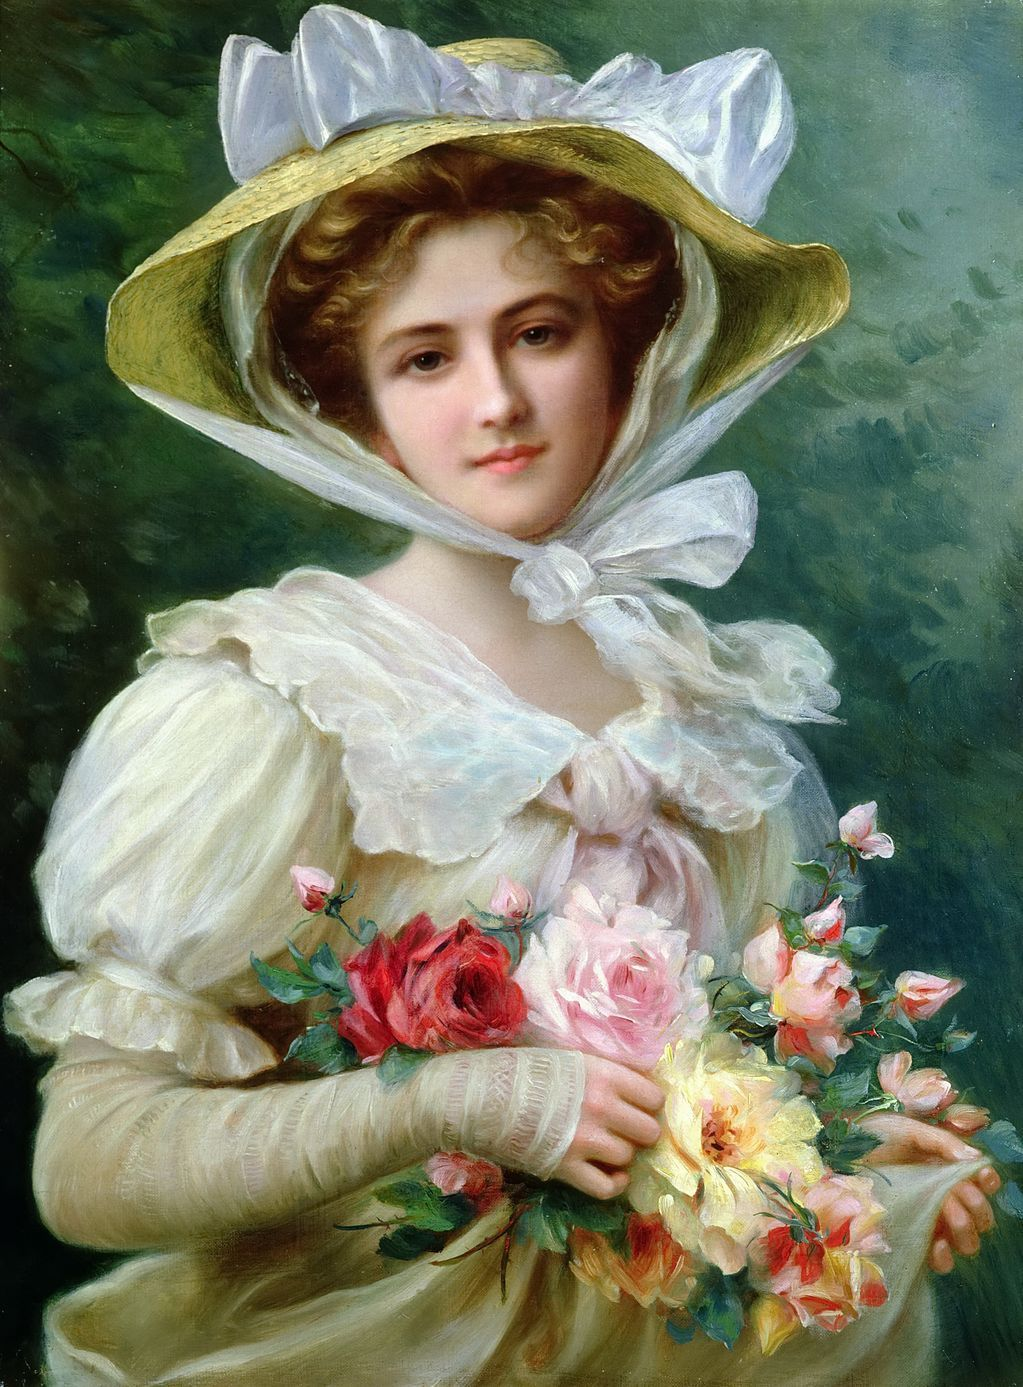 EMILE VERNON (french, 1872-1919) -Elegant lady with a bouquet of roses